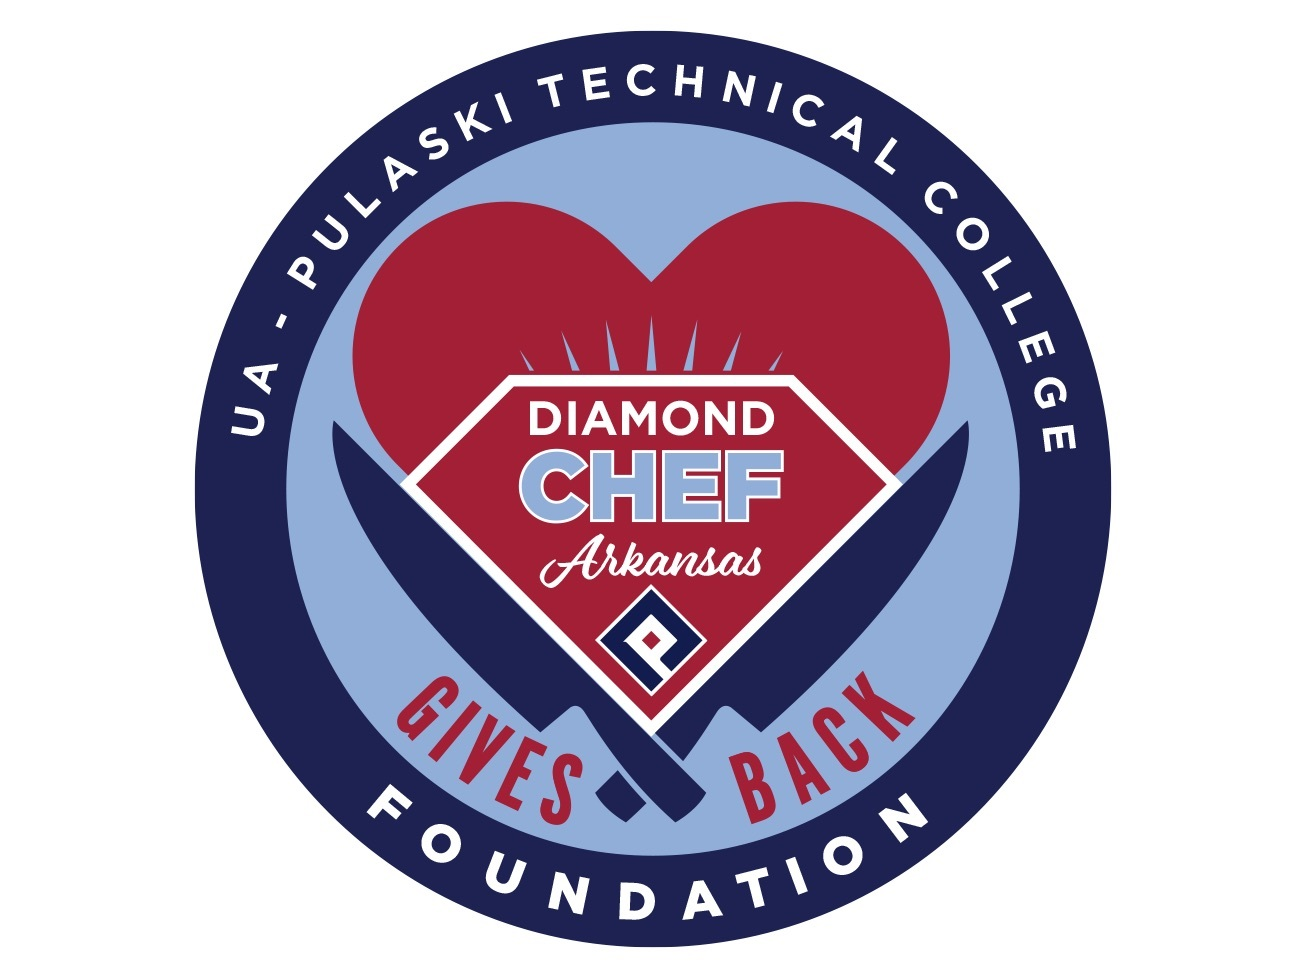 Diamond chef   gives back logo